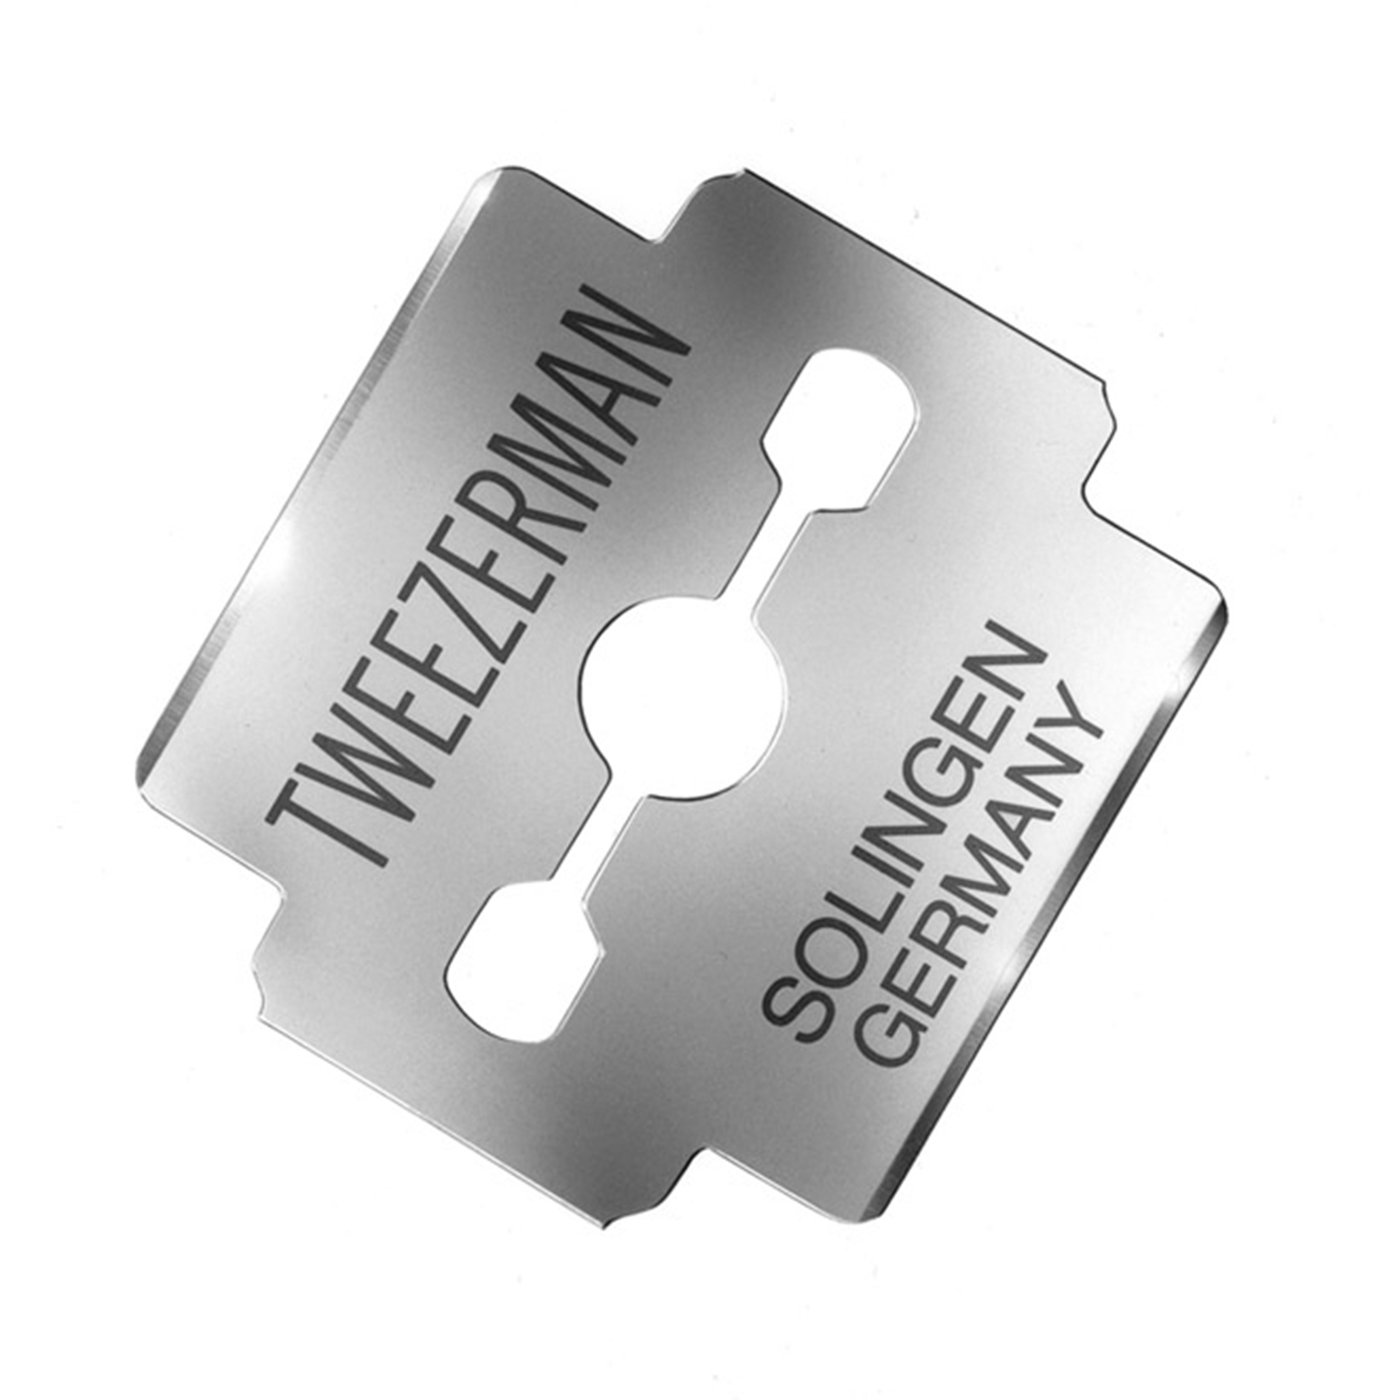 Tweezerman Callus Shaver Blades, 0.80 Ounce Tweezerman International 50025-L